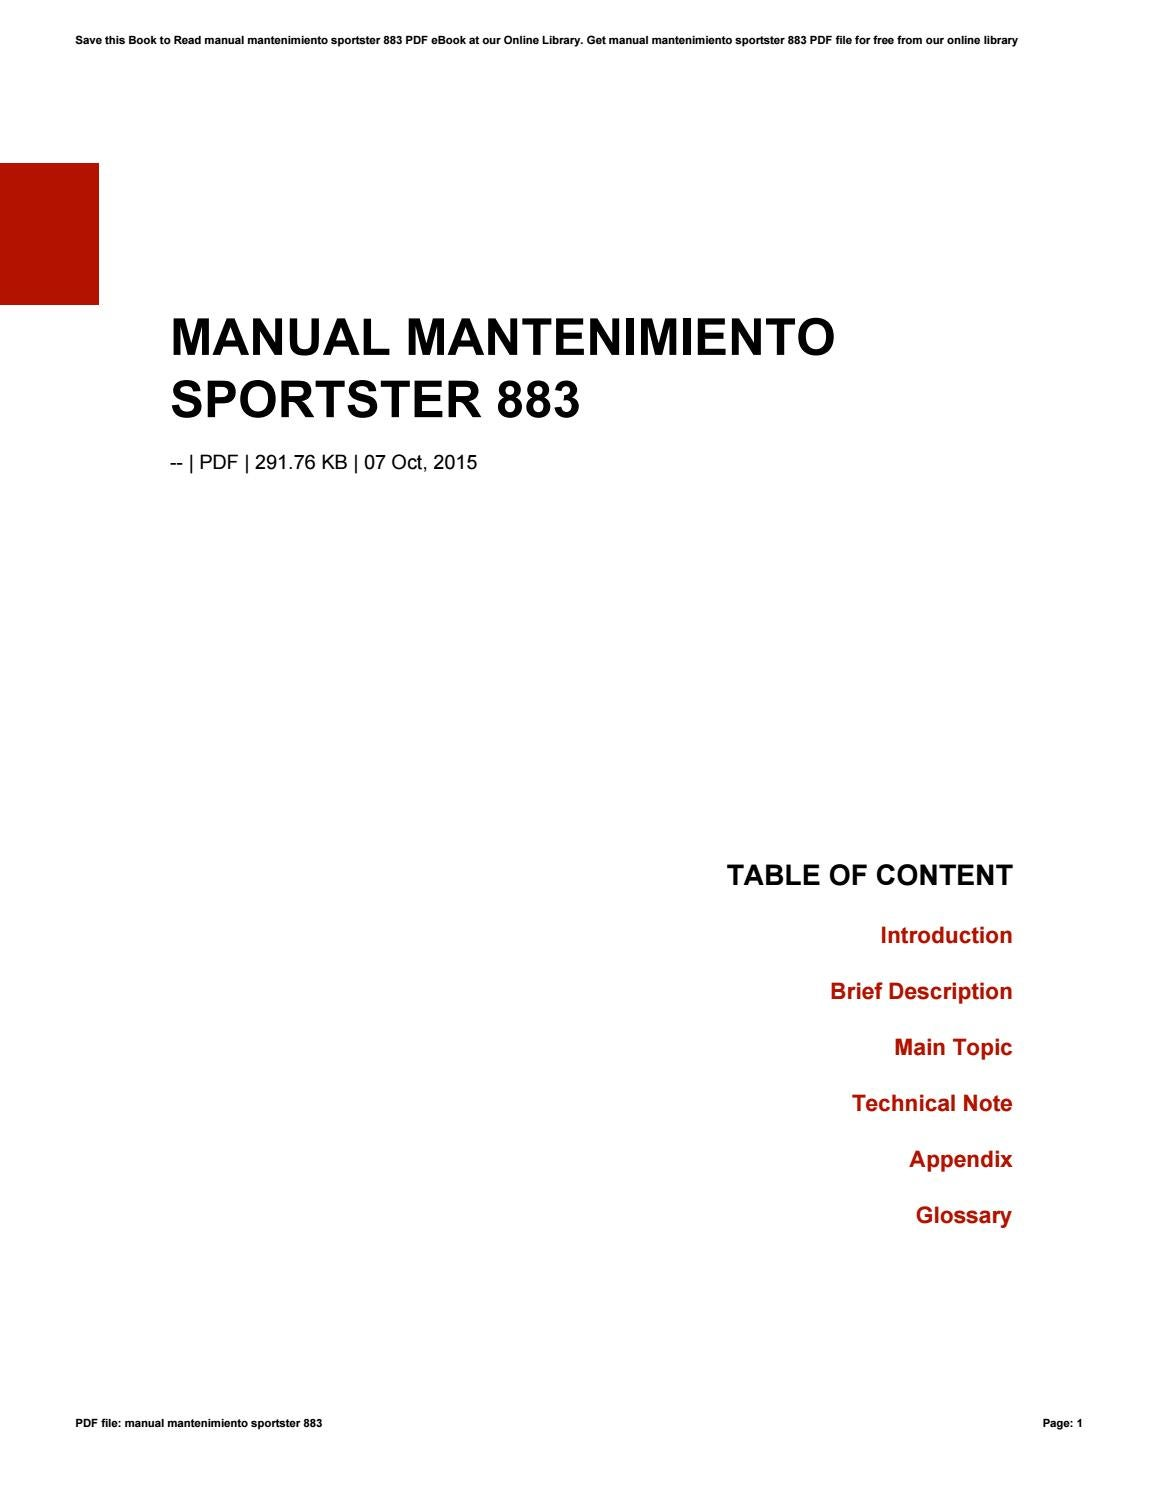 Manual mantenimiento sportster 883 by JessicaMorrison3746